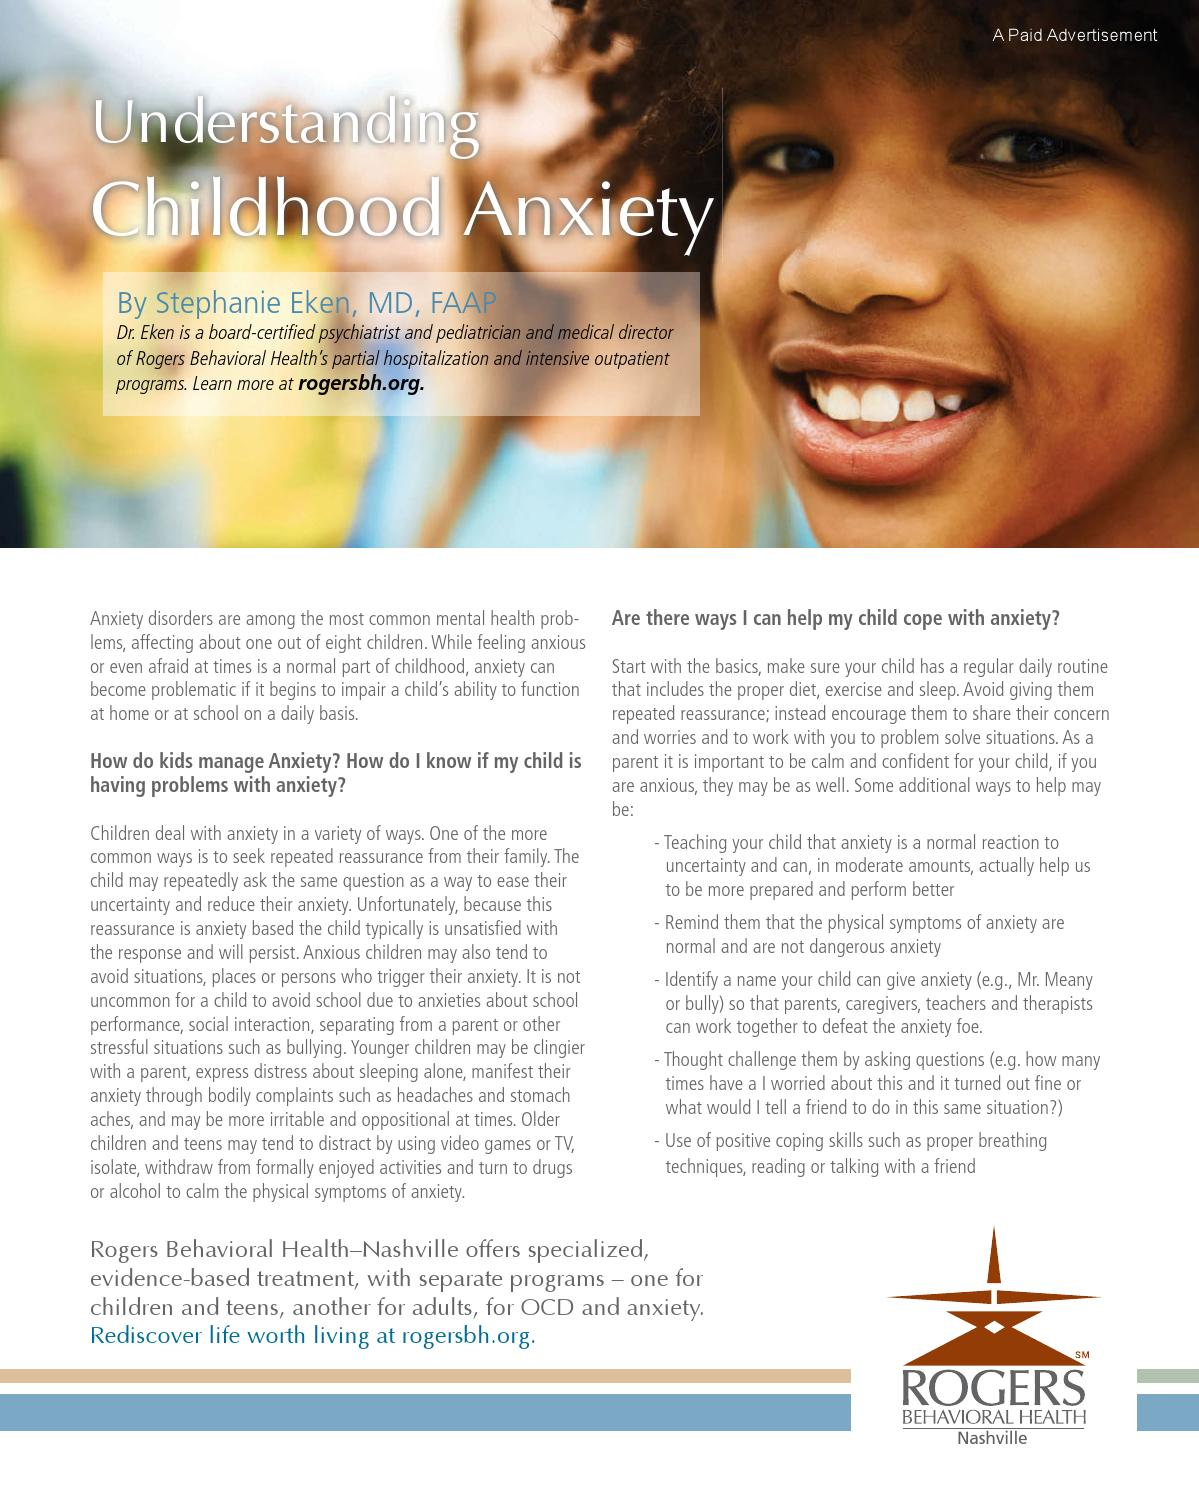 Child Psychiatrists If Kids Are Feeling >> Sp0315 By Day Communications Daycom Media Issuu